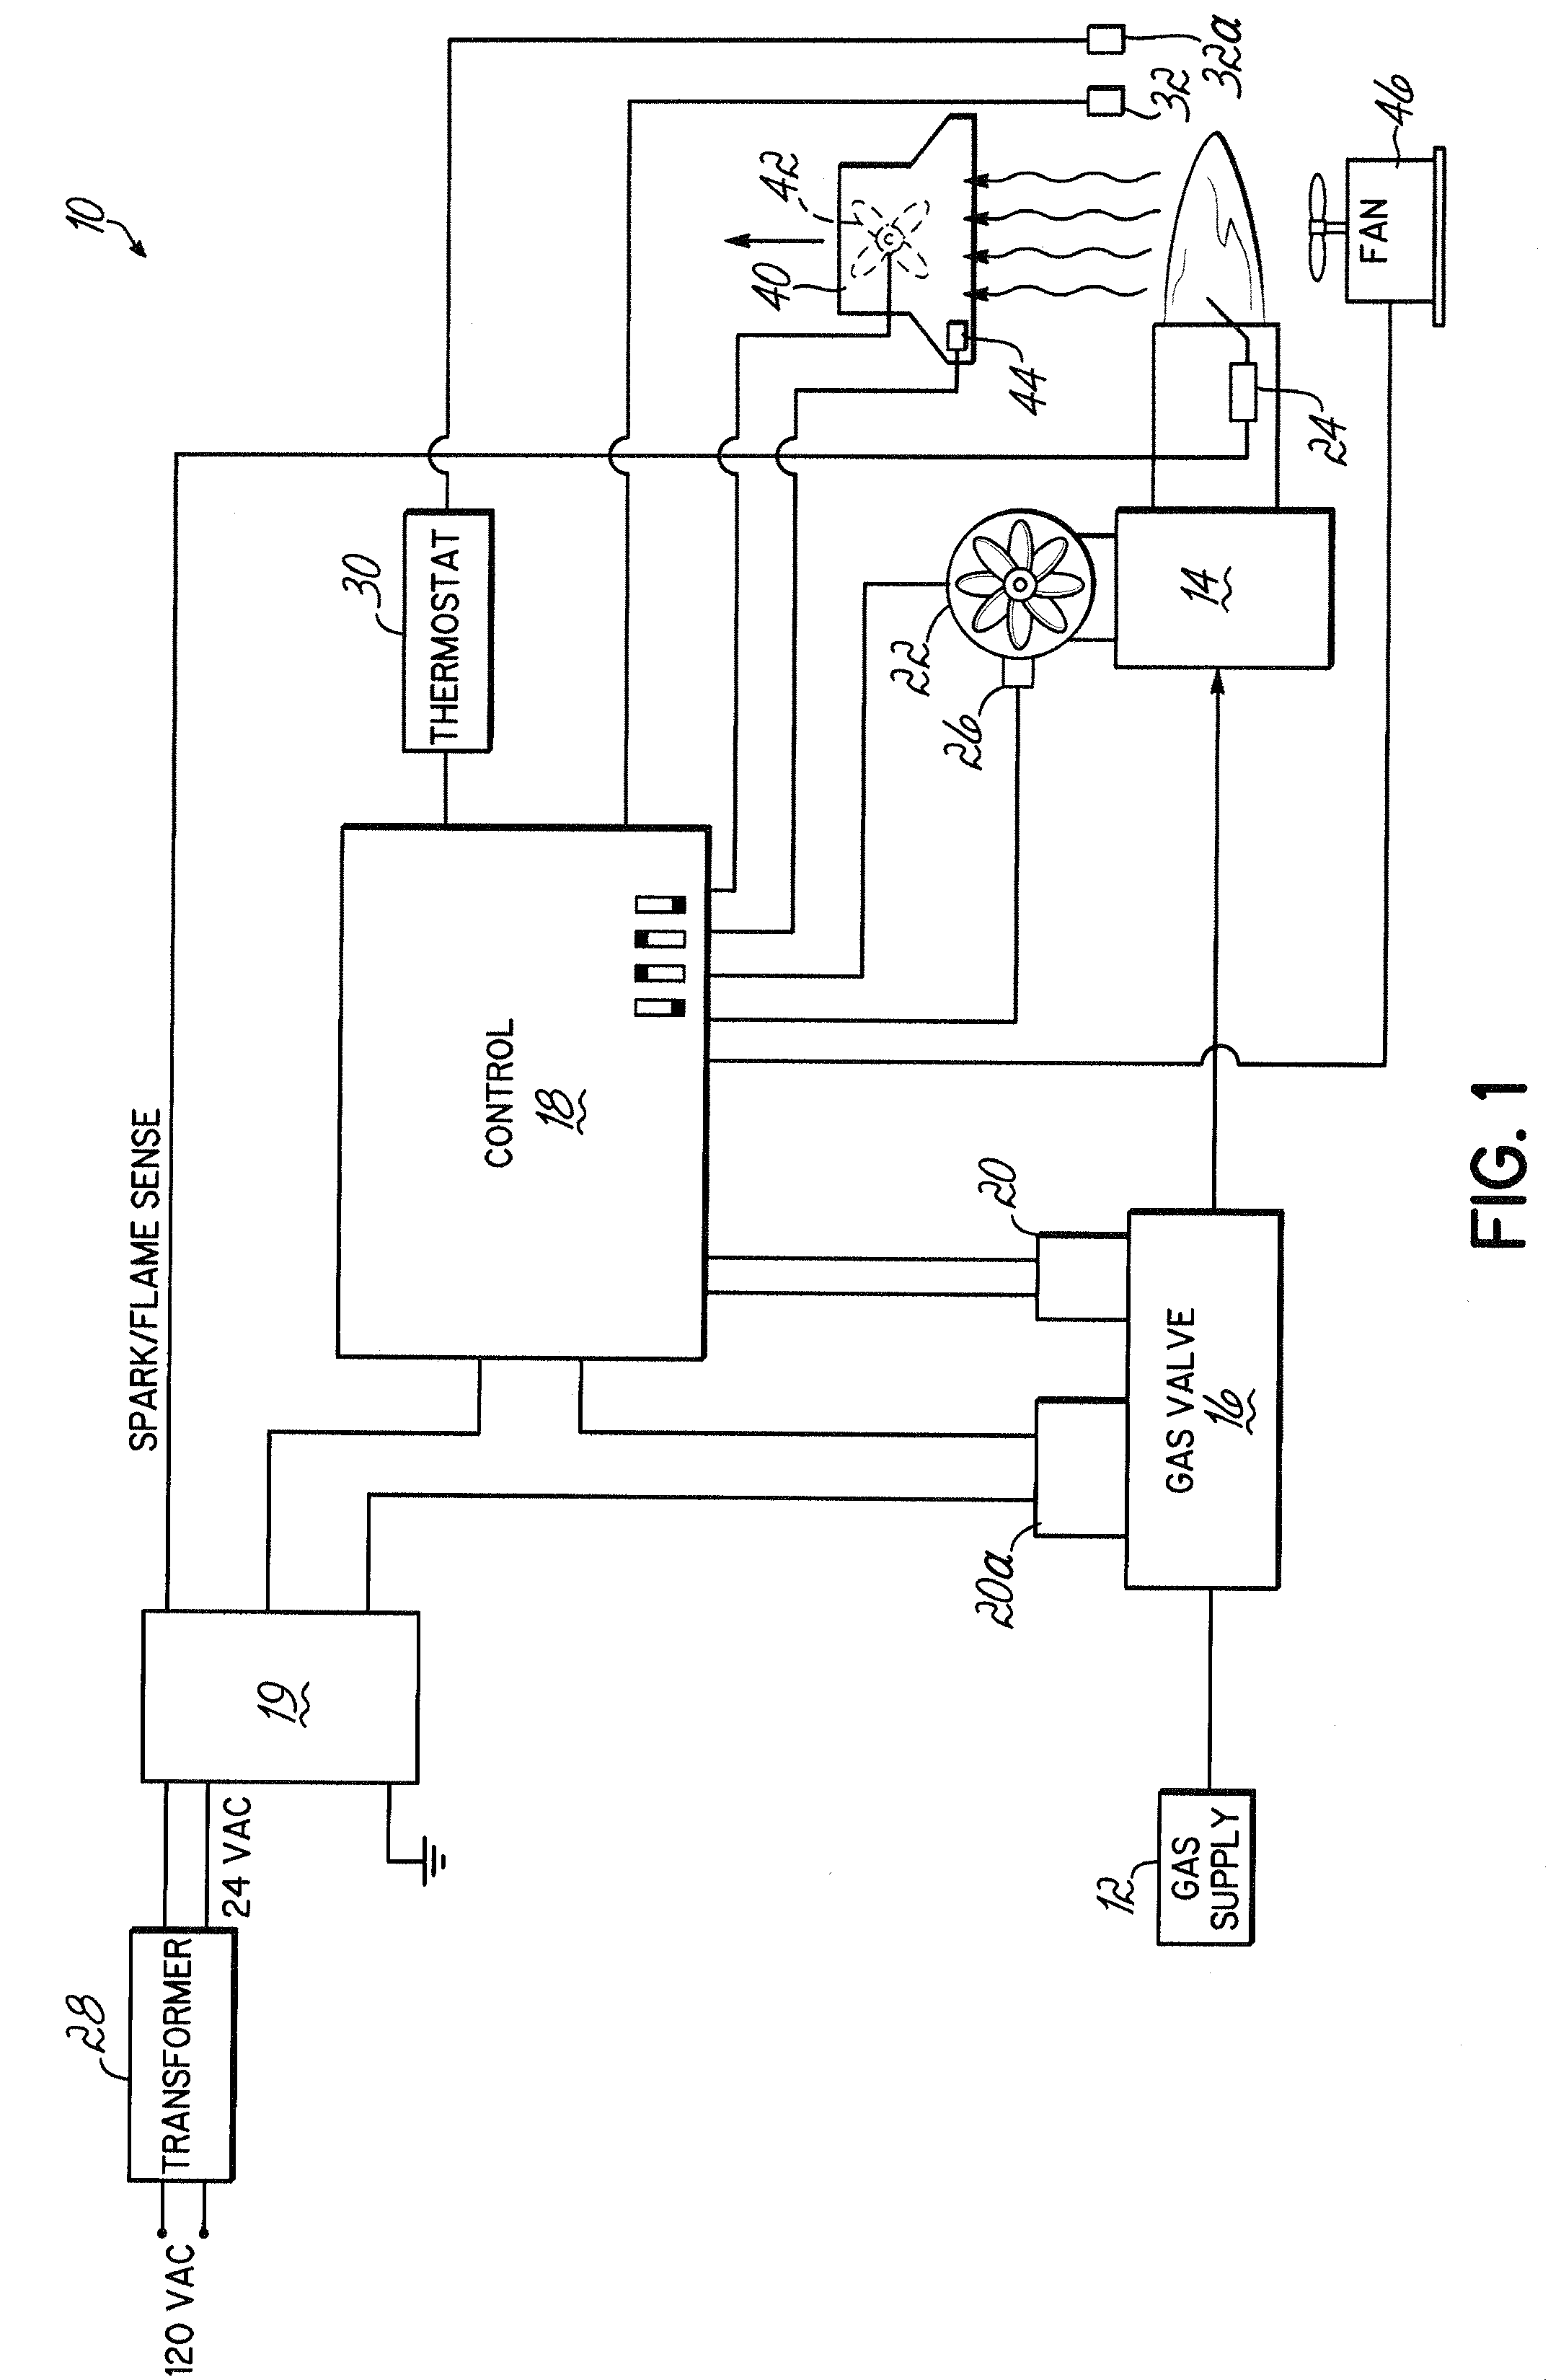 patent us8075304 - modulated power burner system and method